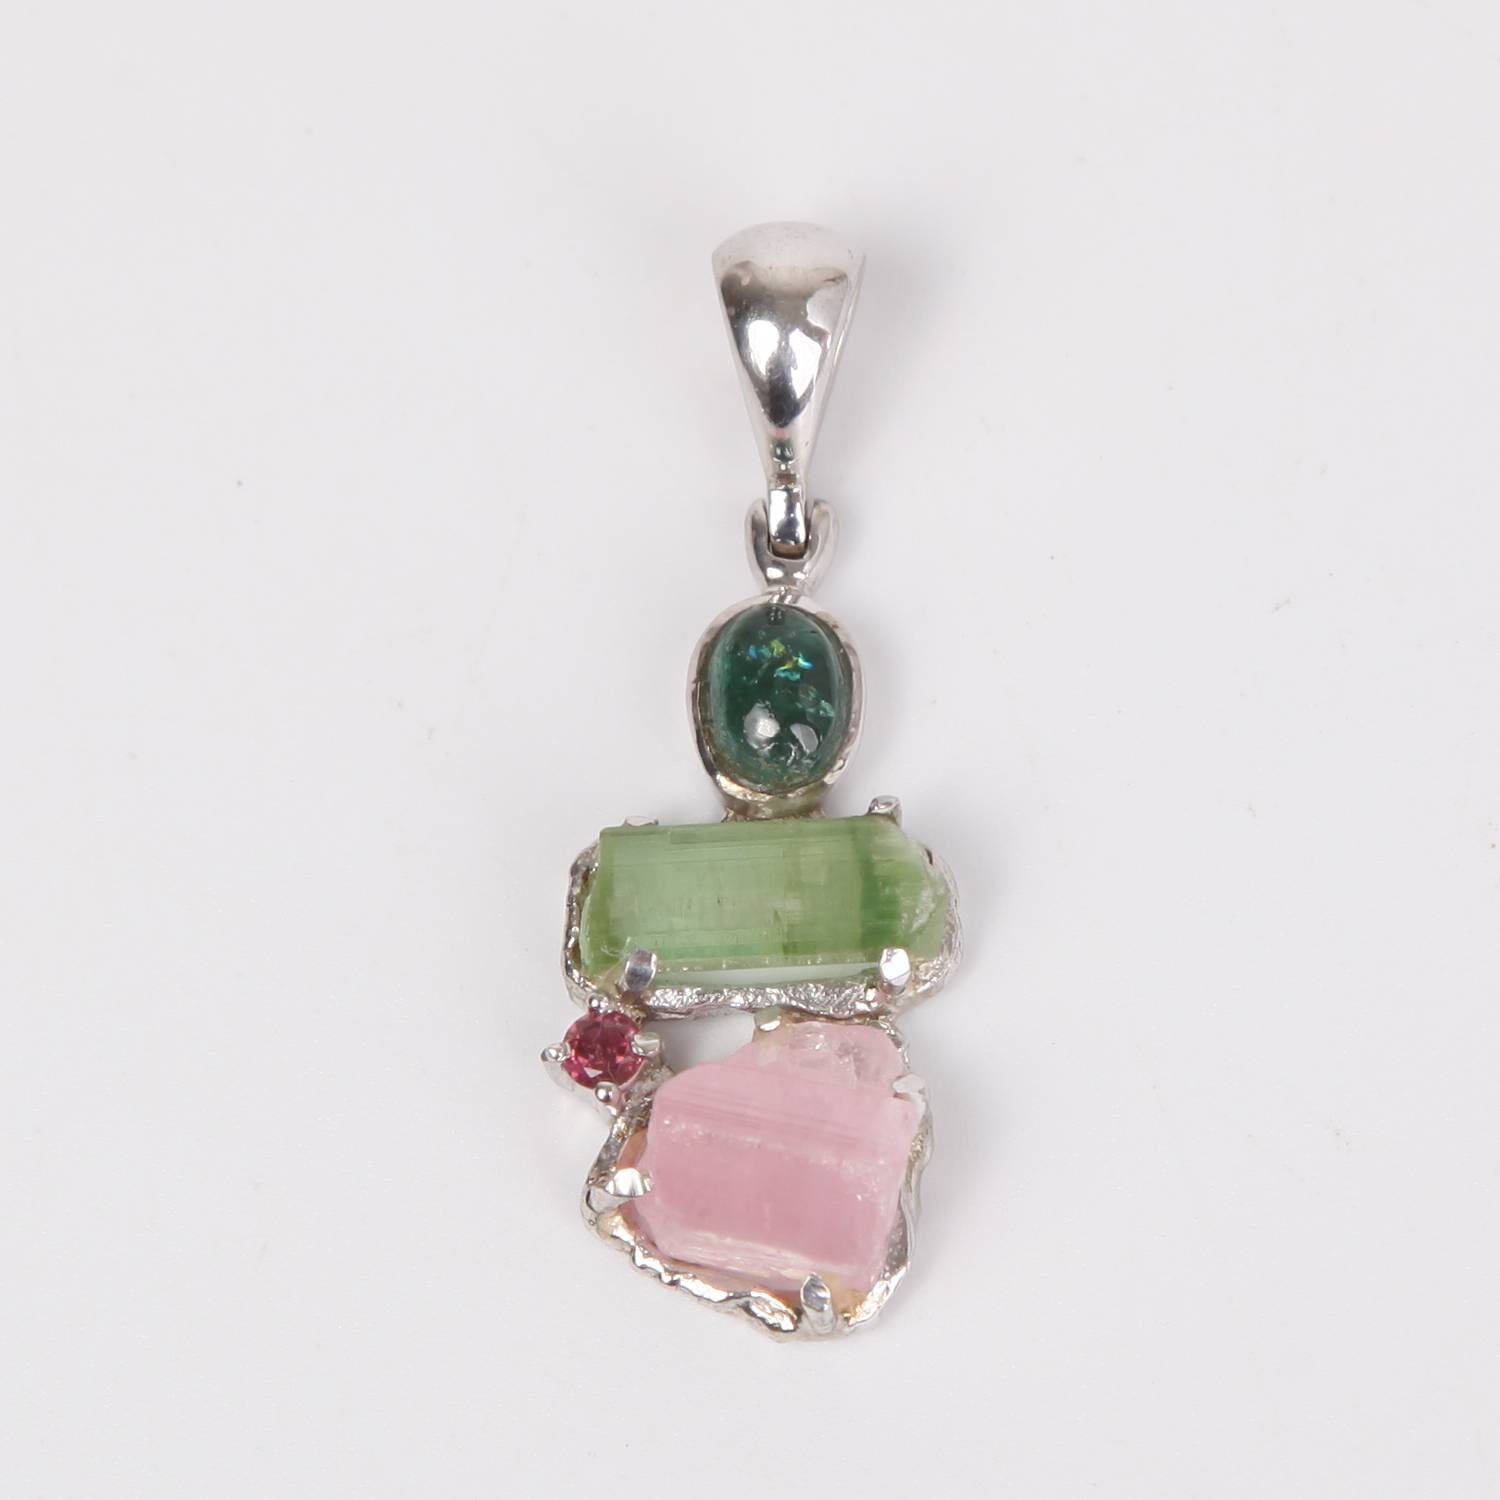 Sterling Silver Pendant with Rough Tourmaline (Pink, Green), Blue Tourmaline Cabochon and Pink Tourmaline (faceted)